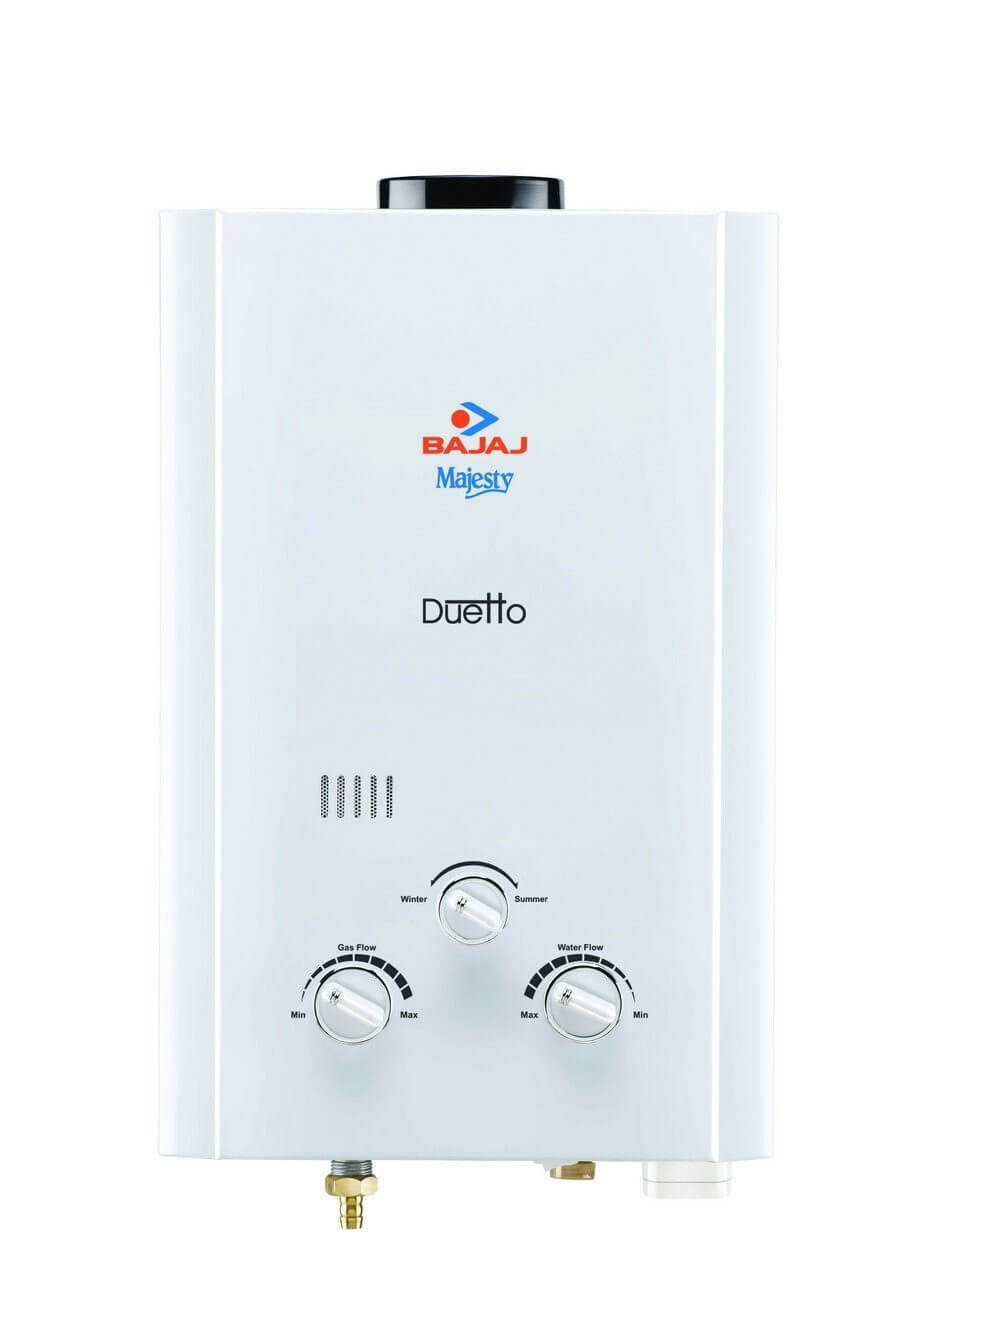 Bajaj Majesty Duetto Water Heater